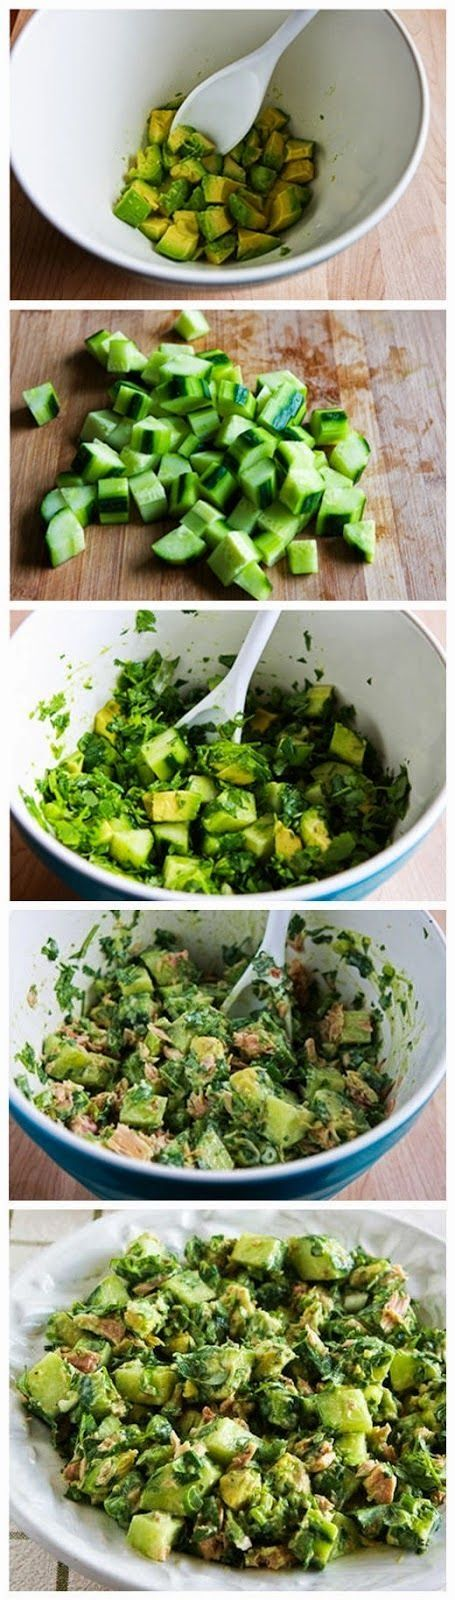 Cucumber Avocado Salad with Tuna, Cilantro, and Lime by yvonne